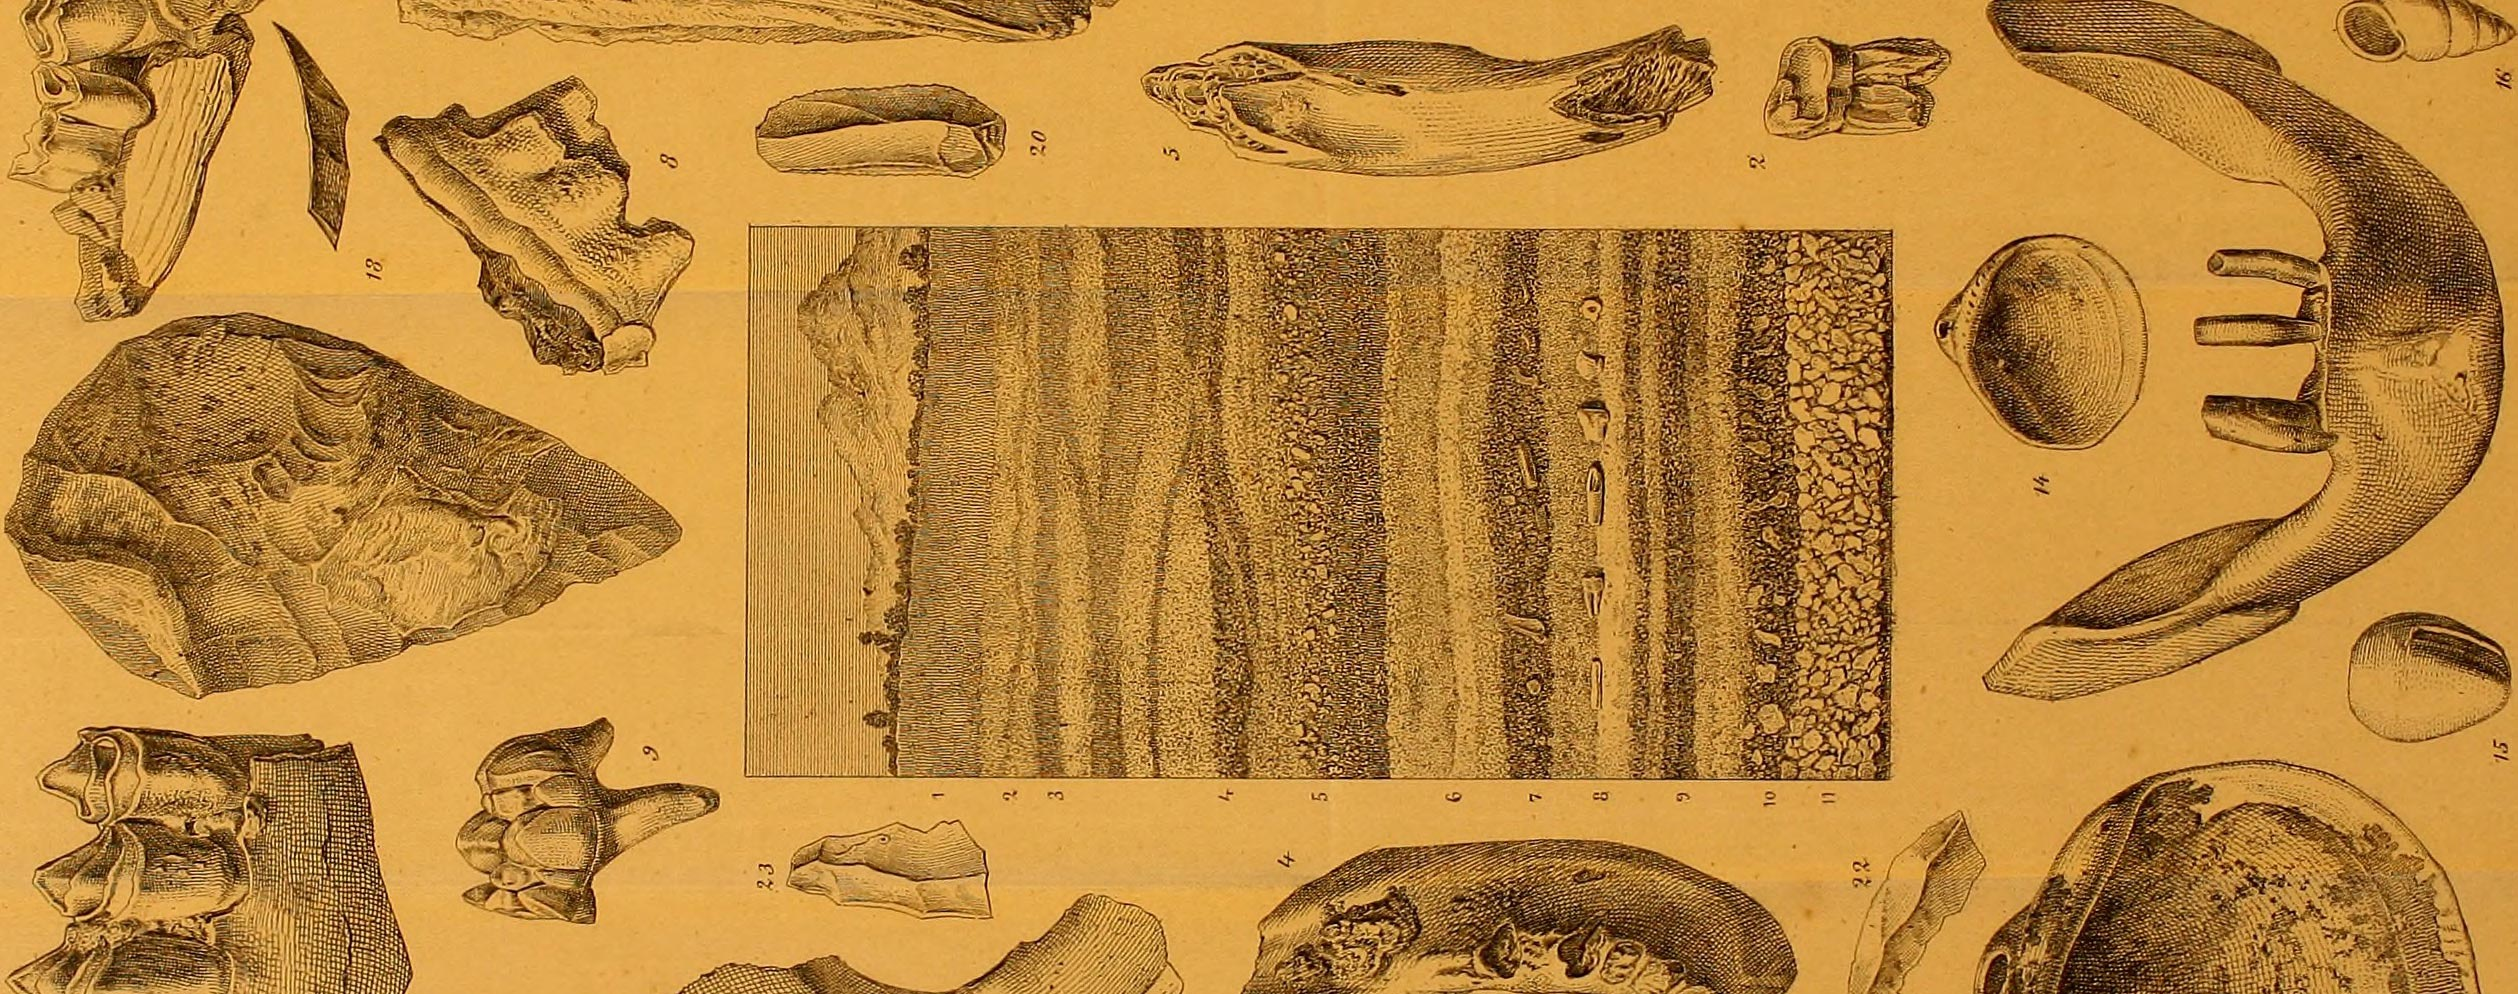 San Ysidro Cut. Human remains and axes, etc. Illustration by Kraus from Volume 1 of Anales de Historia natural, 1872.